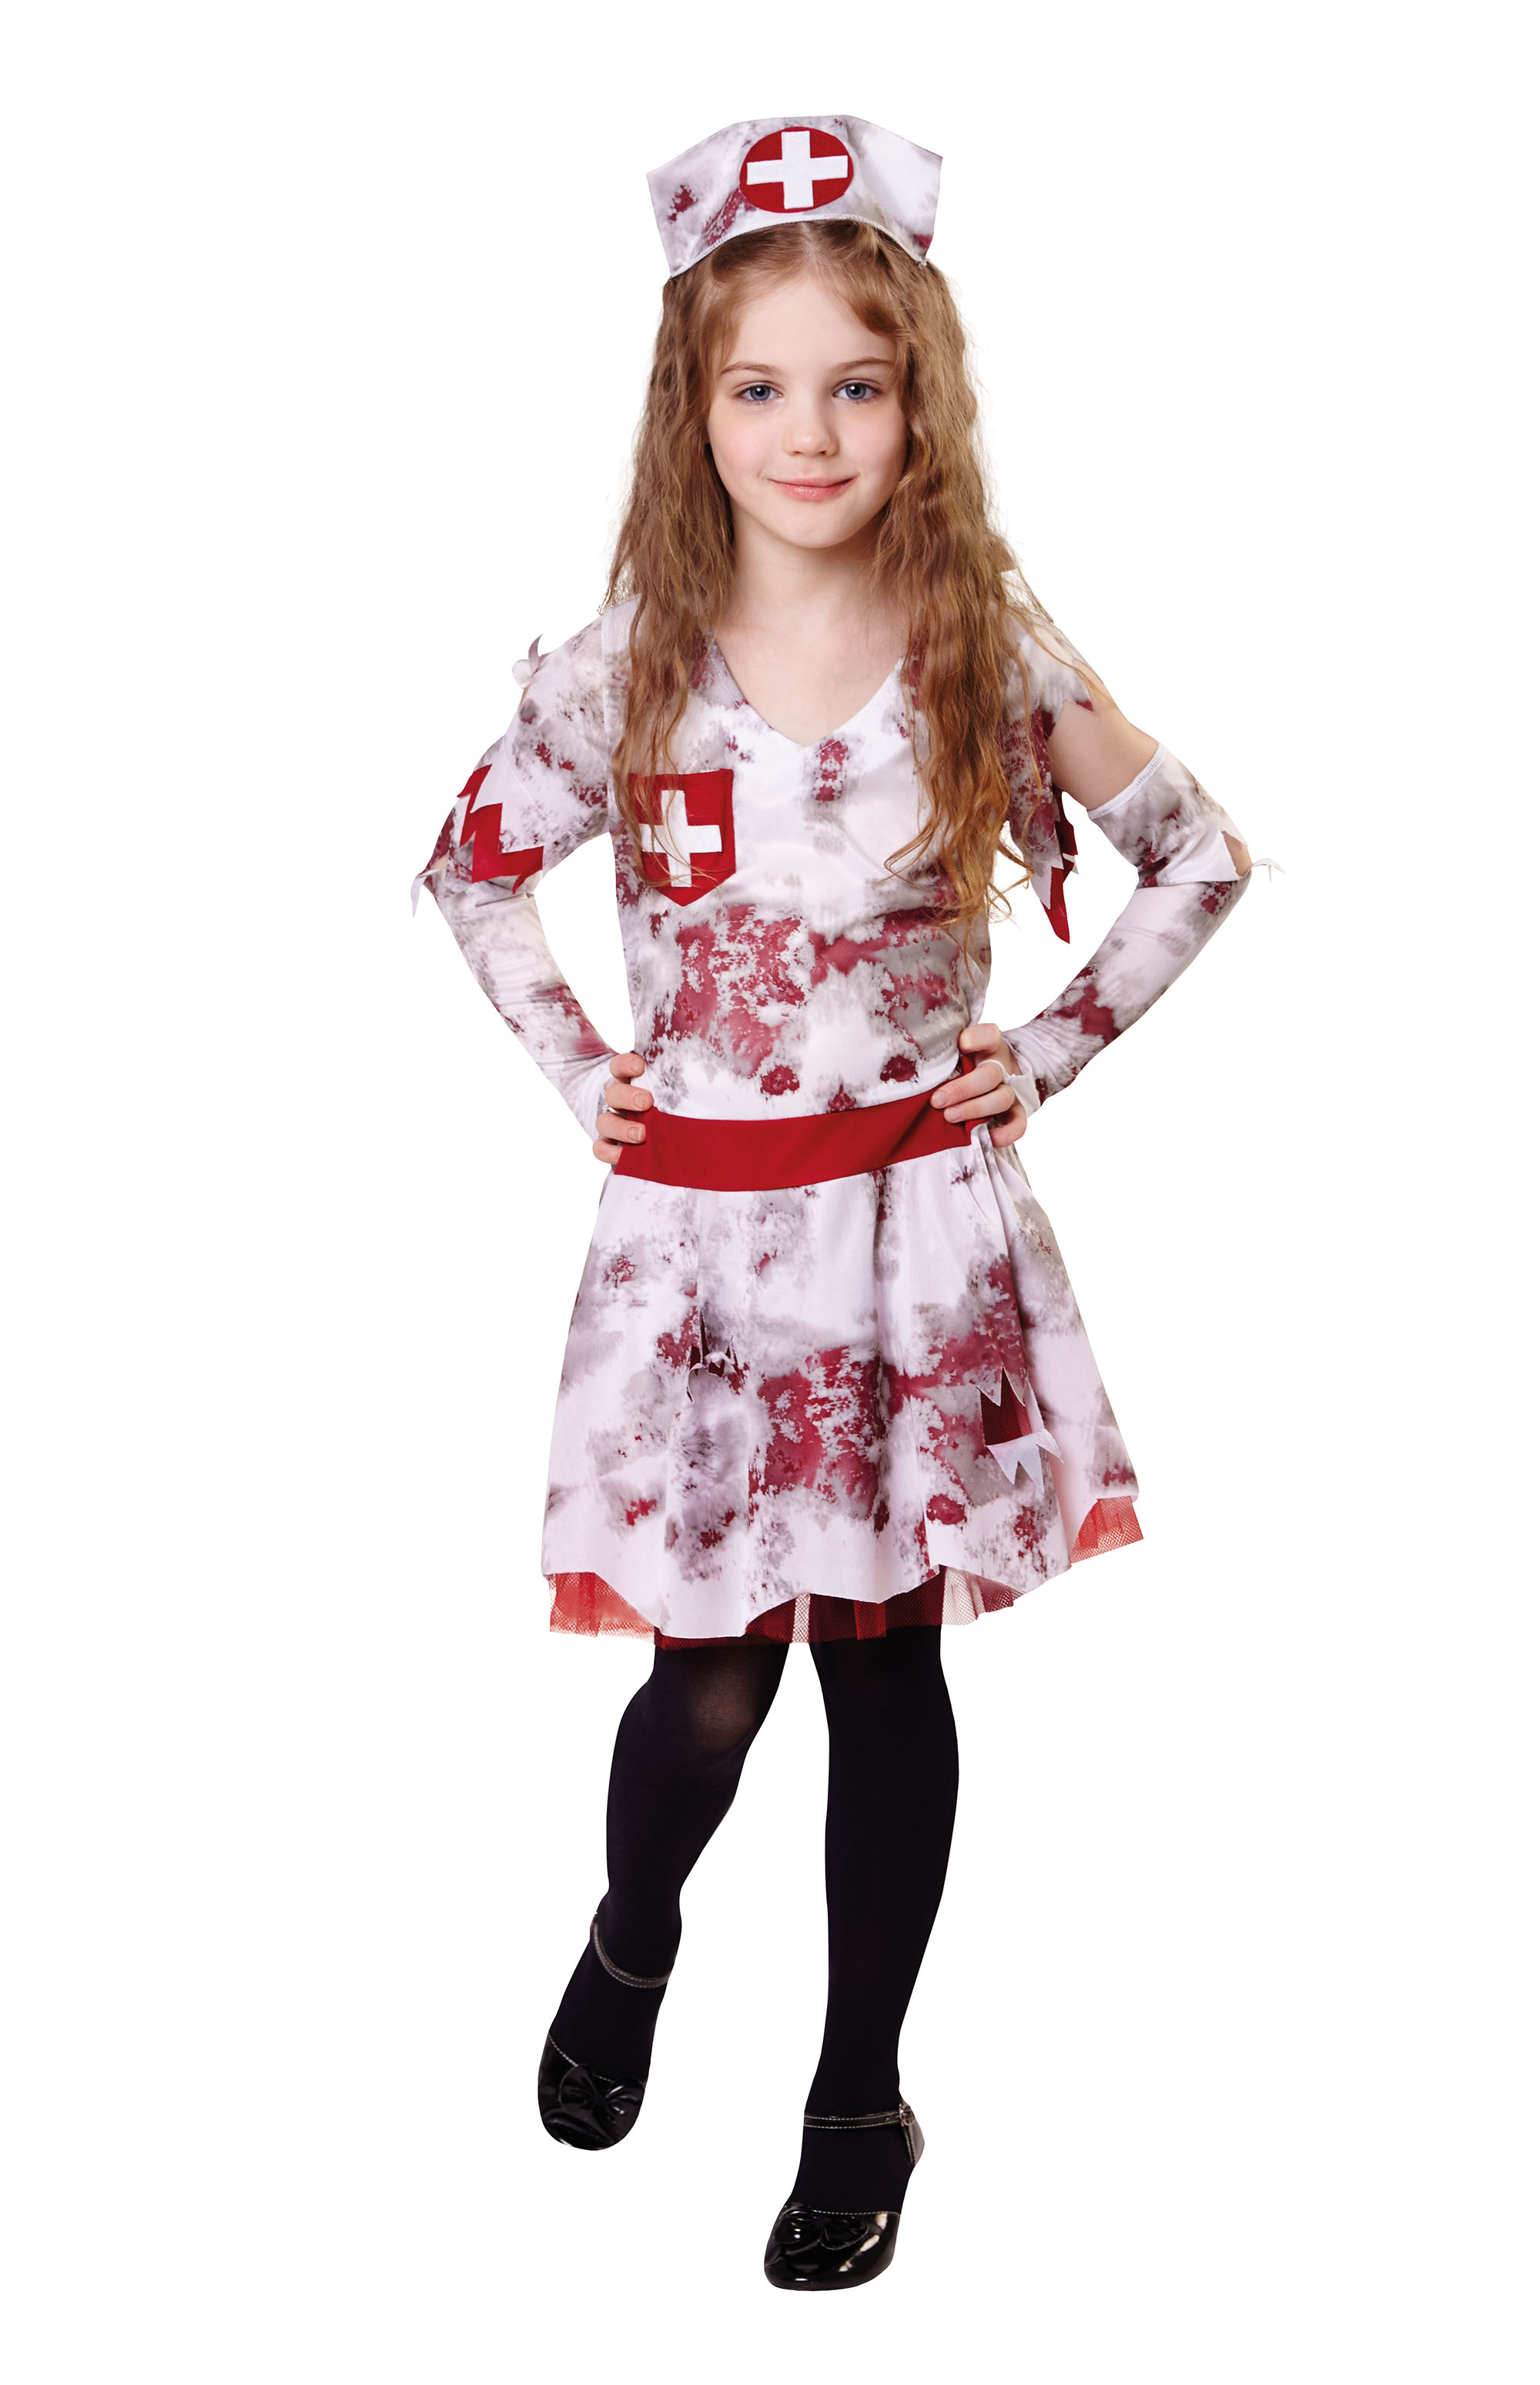 Halloween Costumes For Kids Girls 9.Details About Zombie Nurse Kids Girls Halloween Fancy Dress Costume Childs Outfit 9 10 Yrs